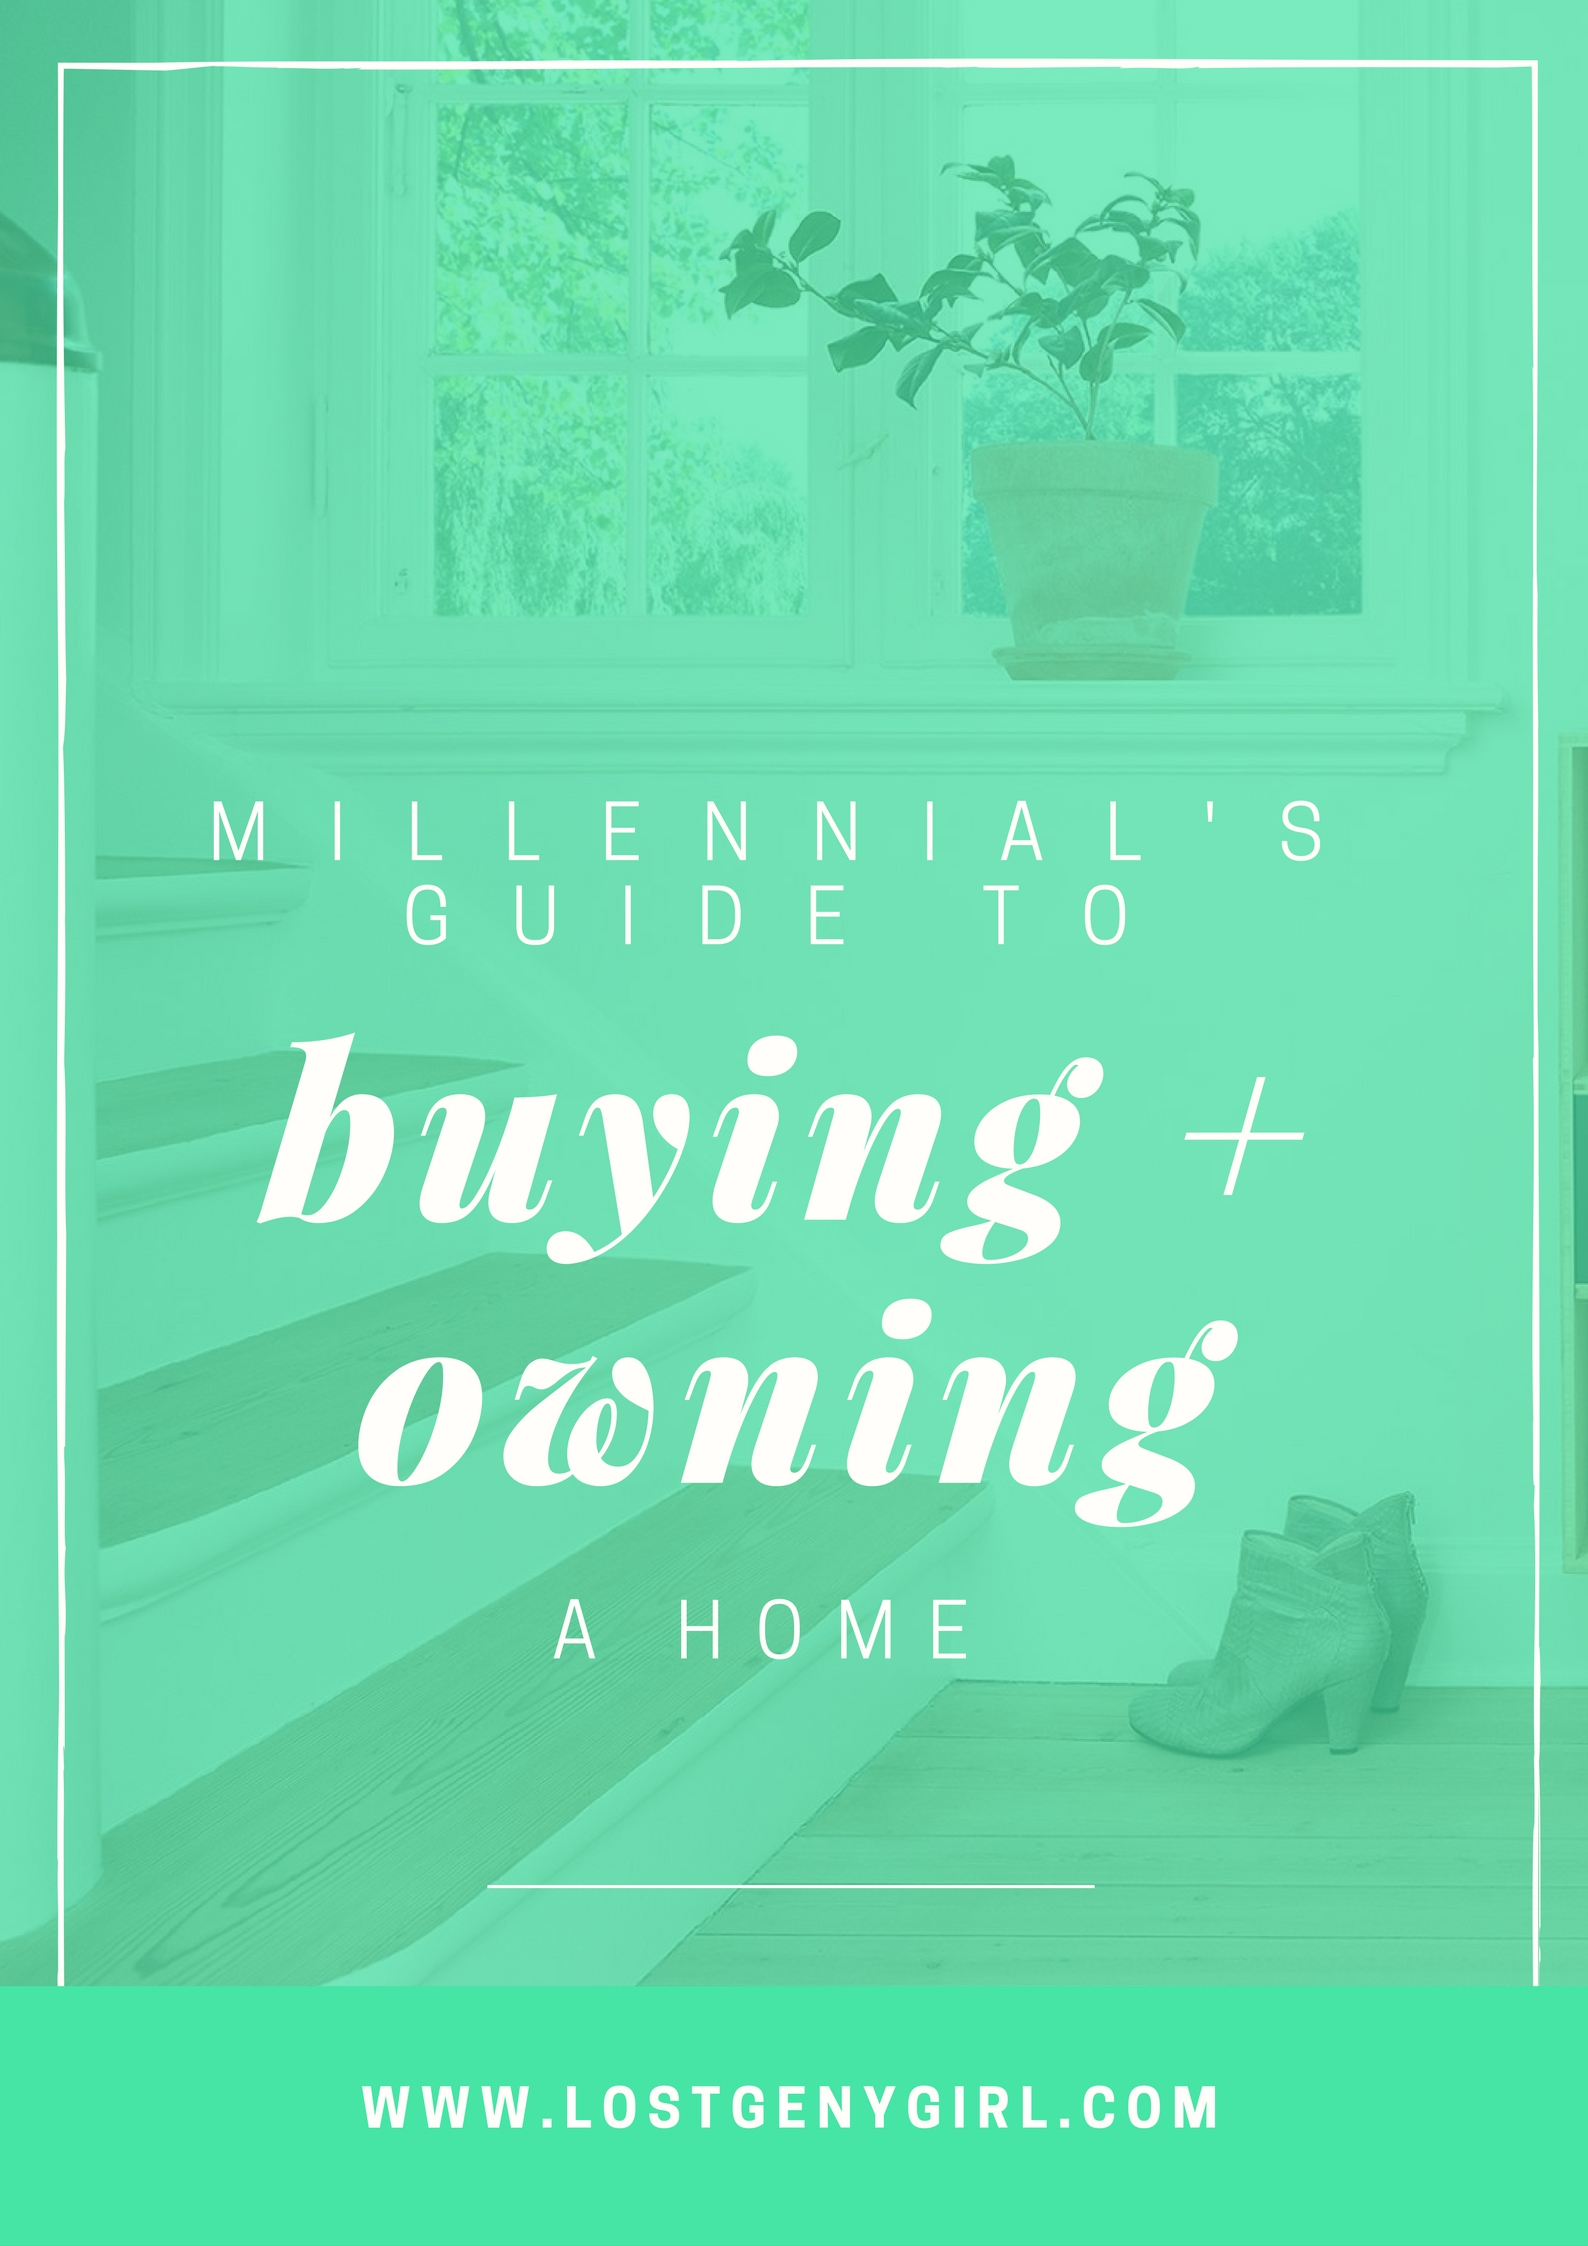 A Millennial's Guide To Buying And Owning A Home